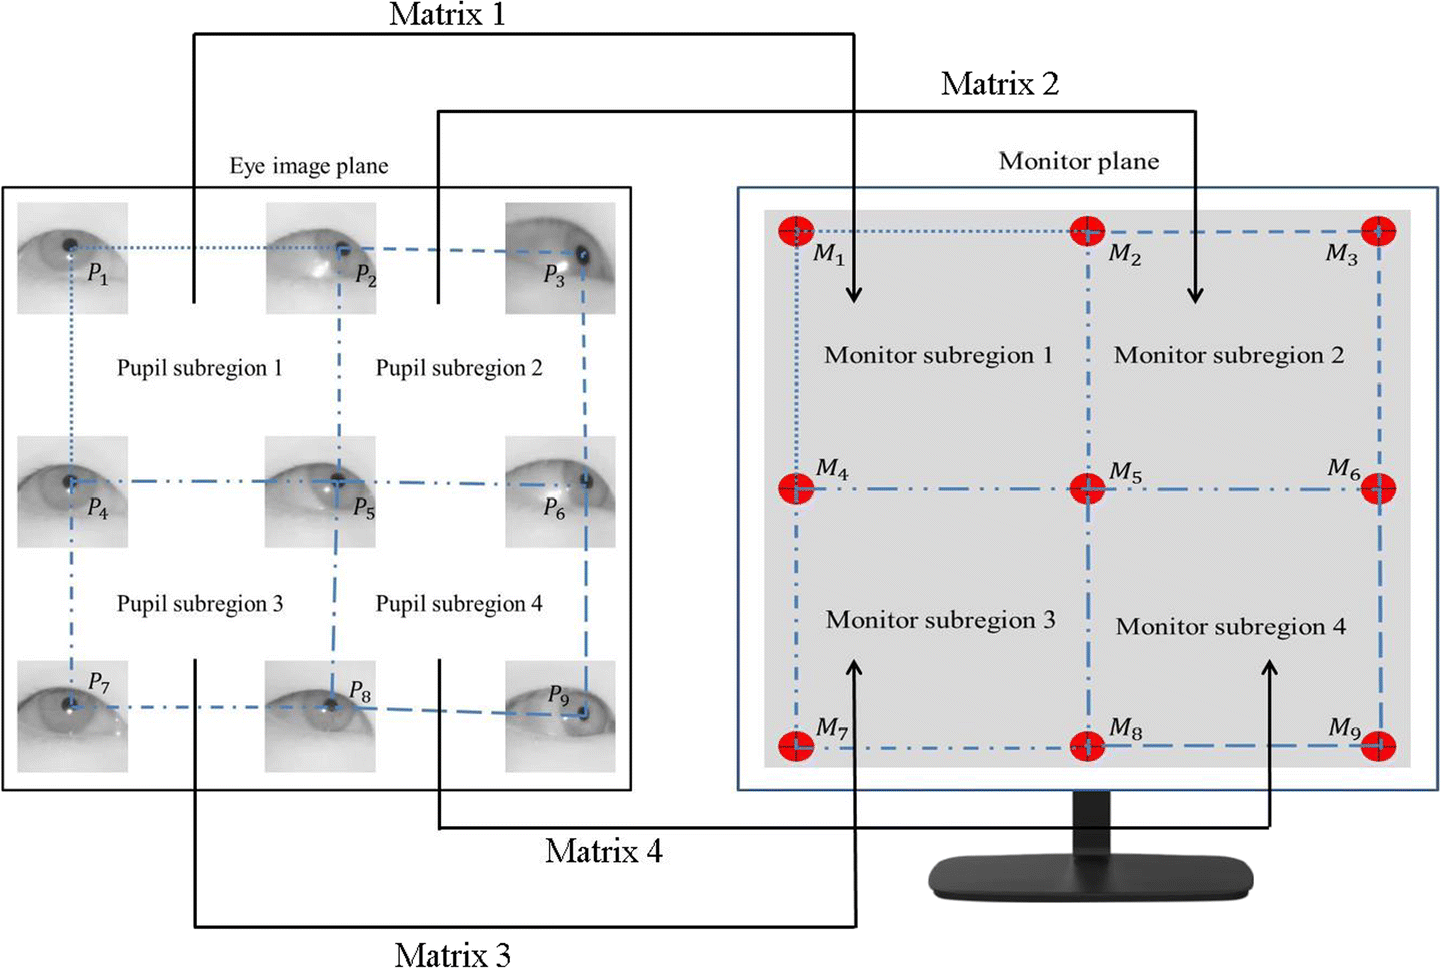 Driver's eye-based gaze tracking system by one-point calibration